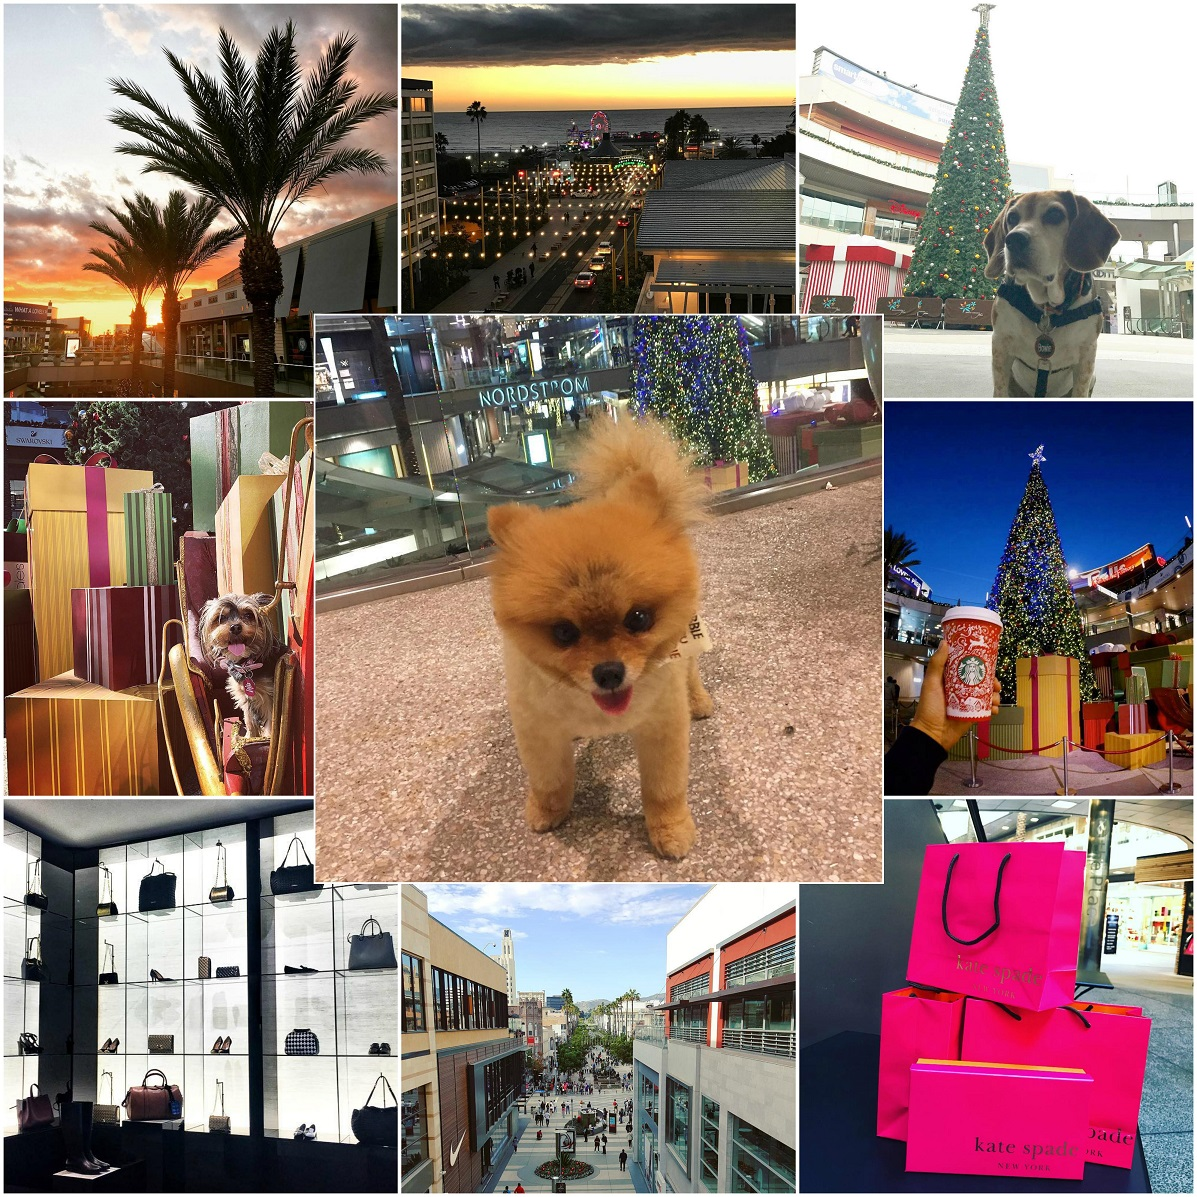 A Day of Shopping at the Santa Monica Place Mall